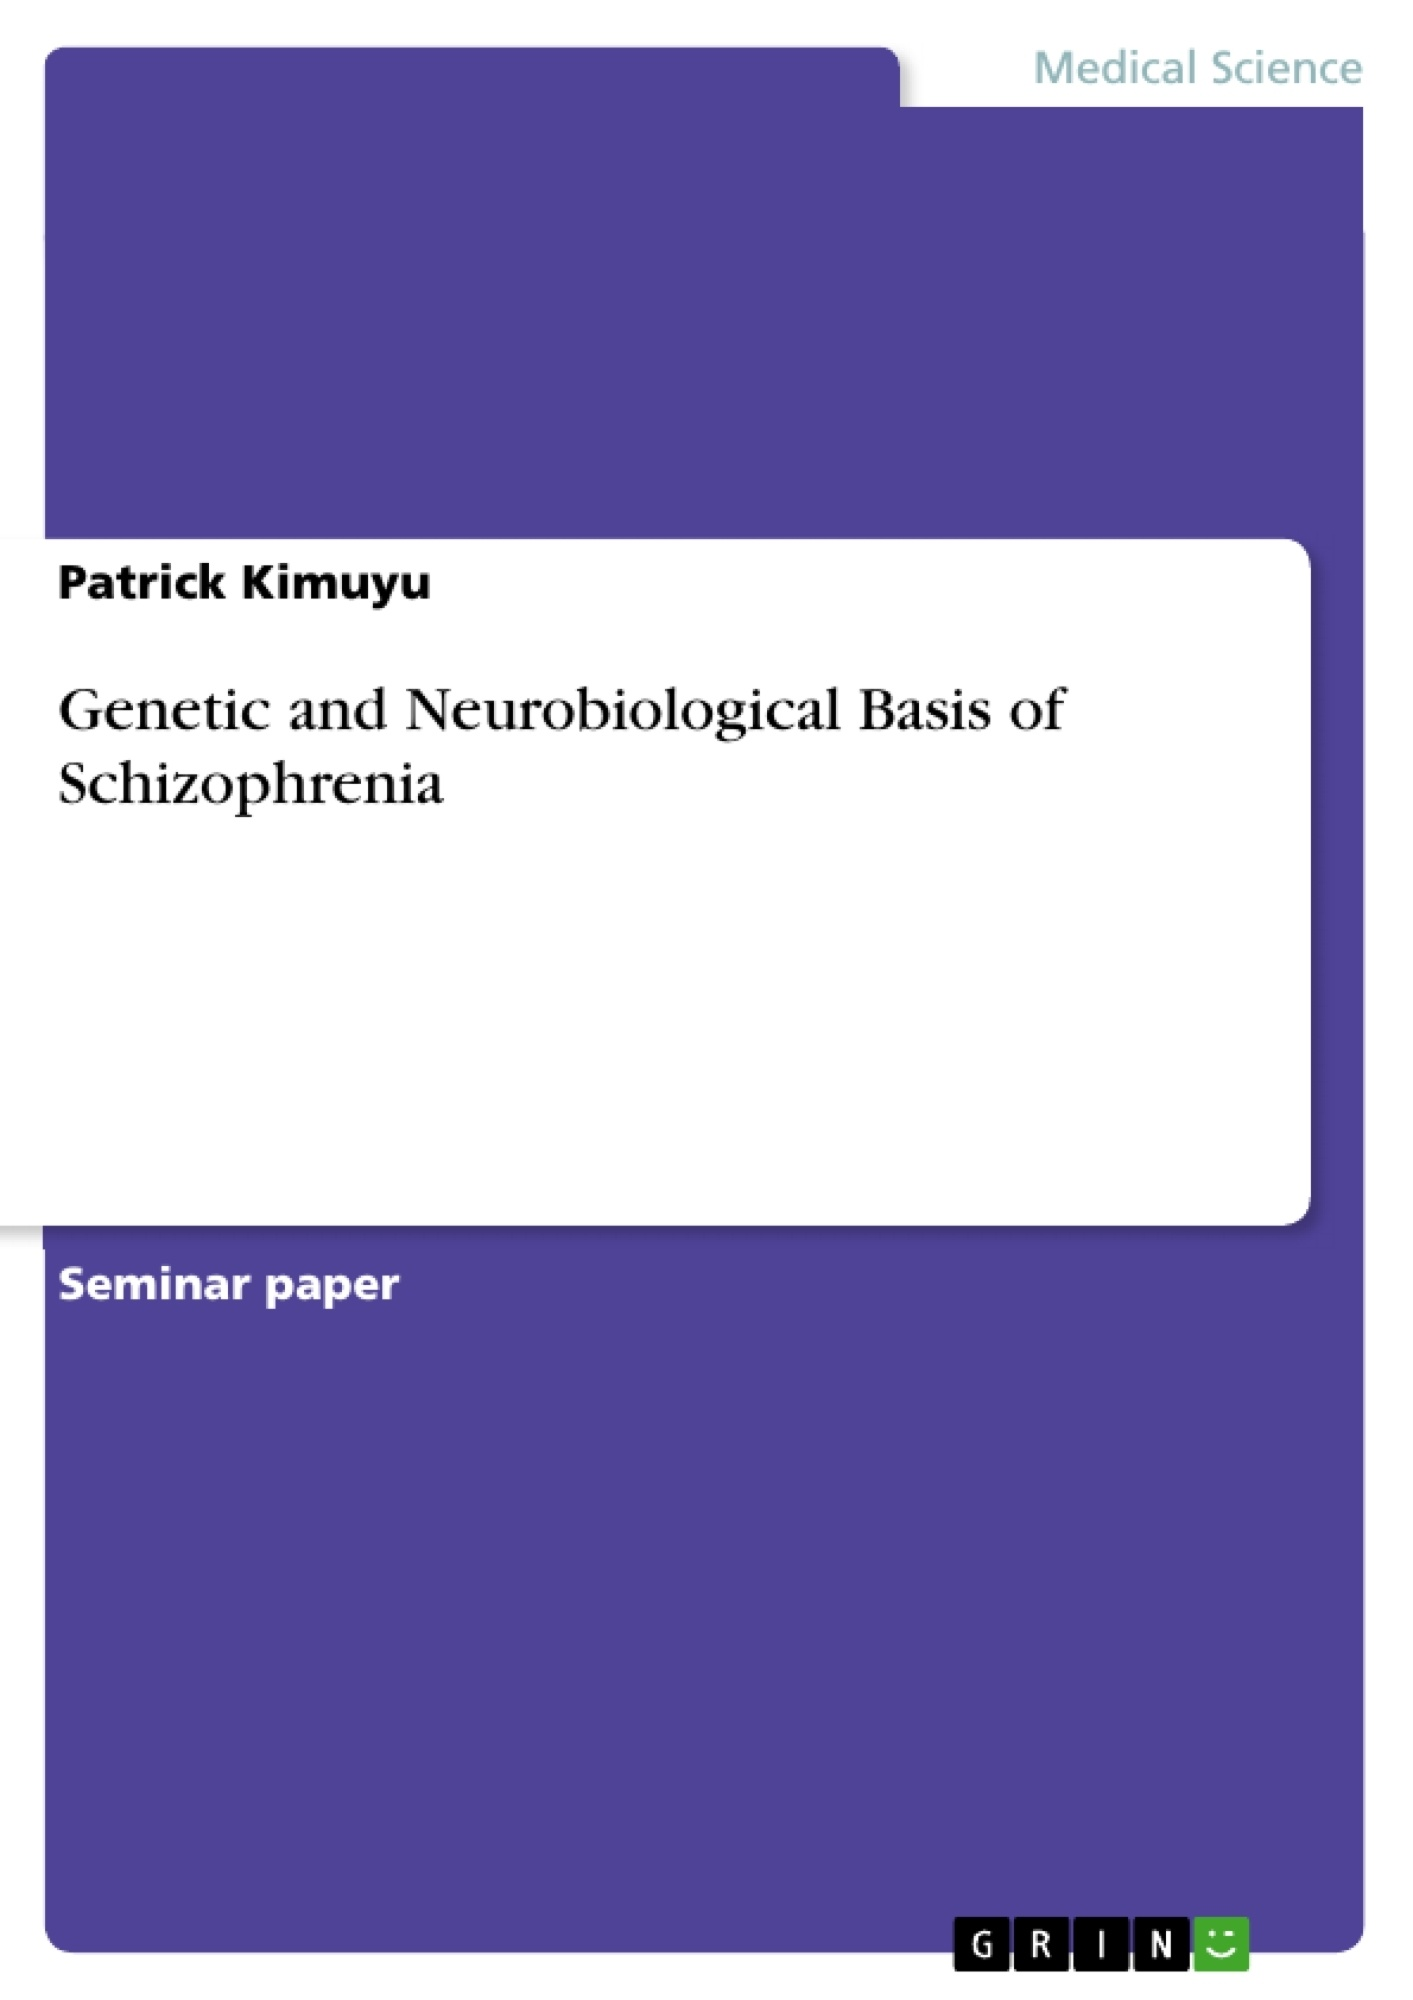 Title: Genetic and Neurobiological Basis of Schizophrenia